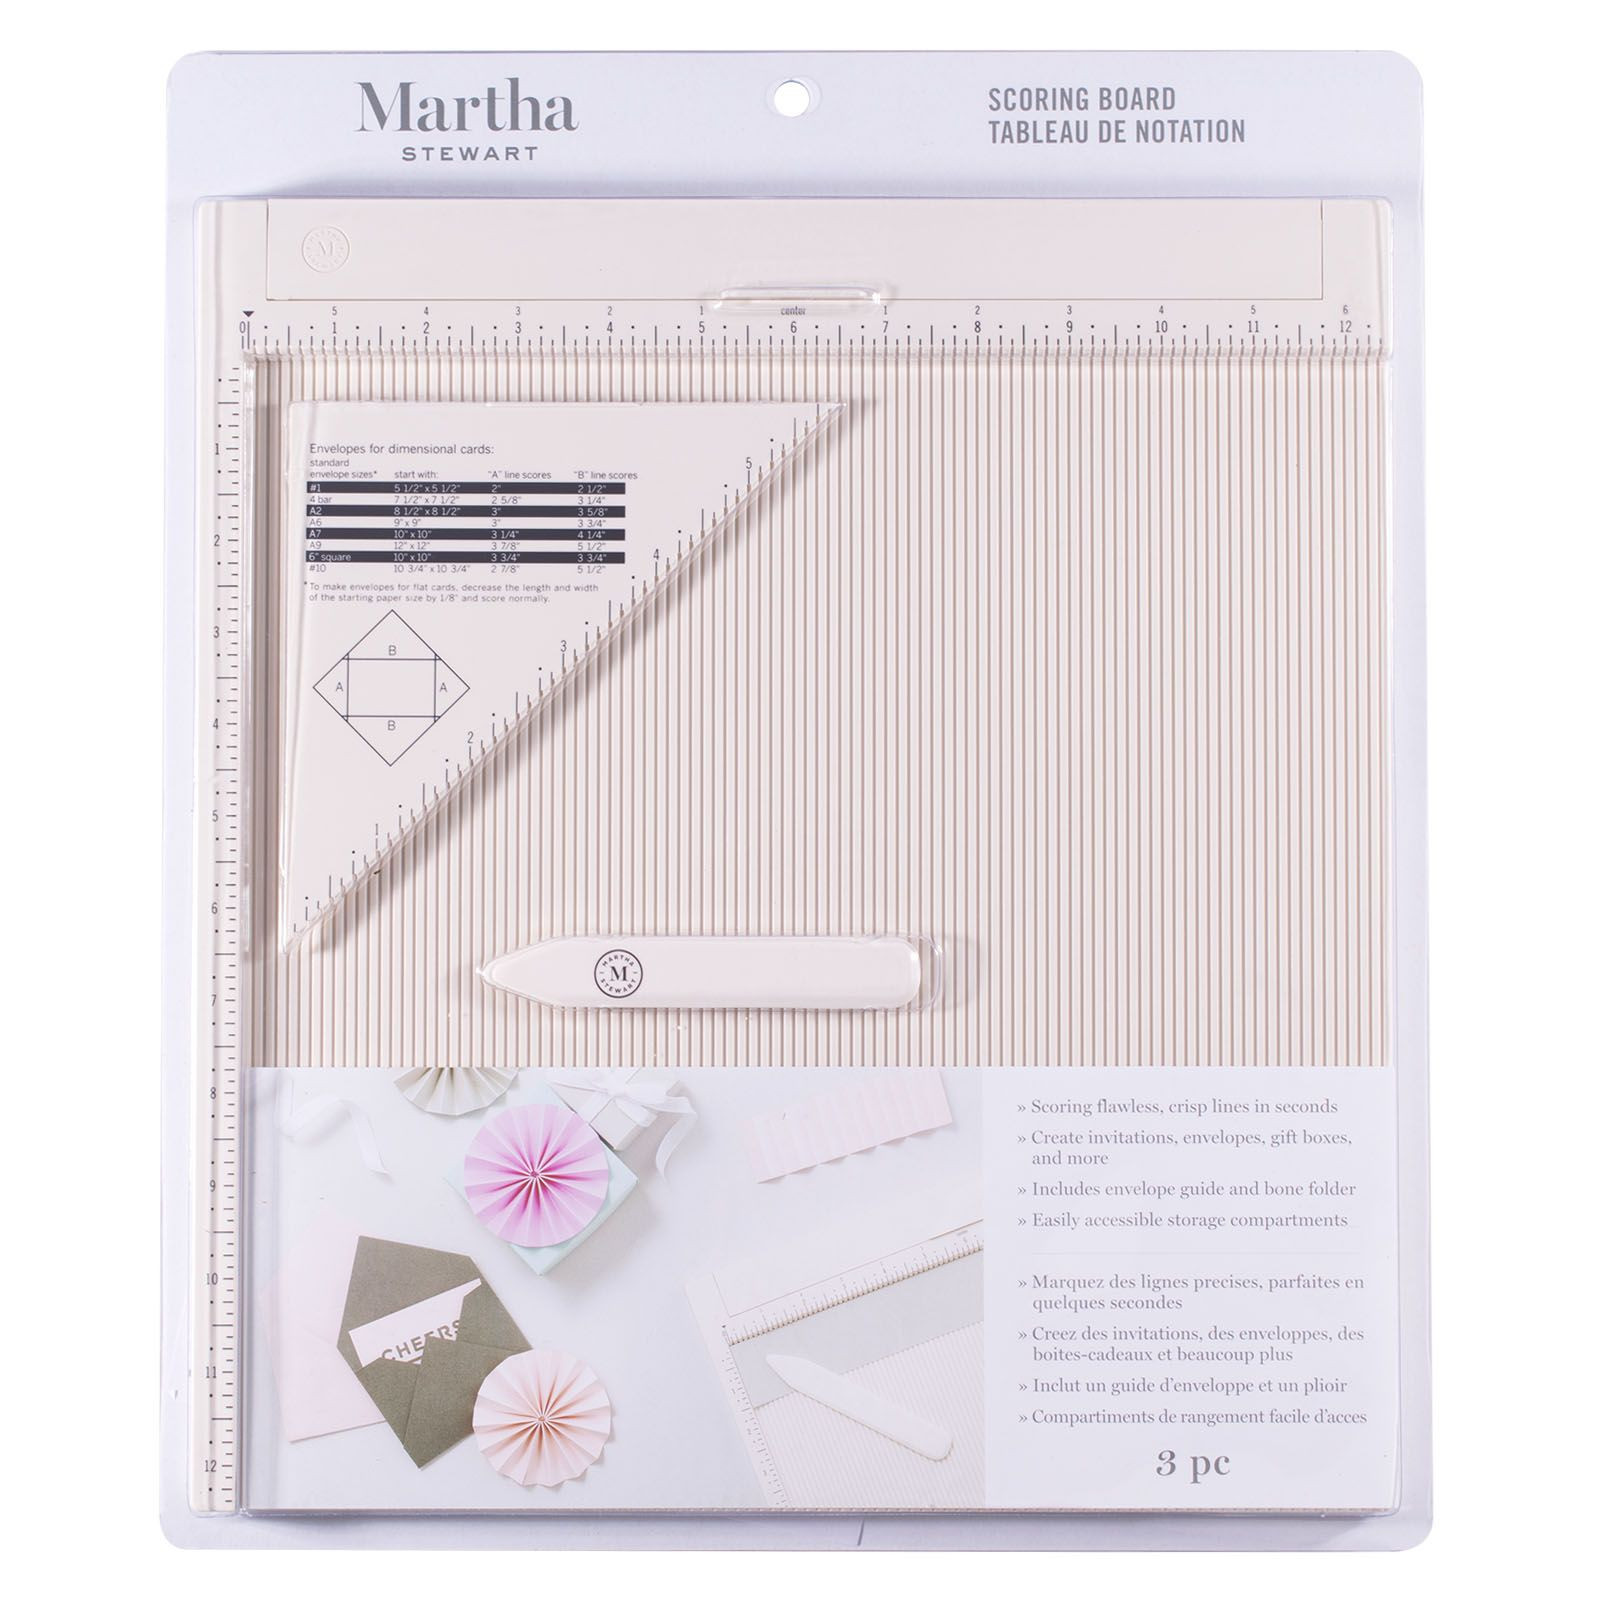 Martha Stewart - Scoring board 30,5x30,5cm